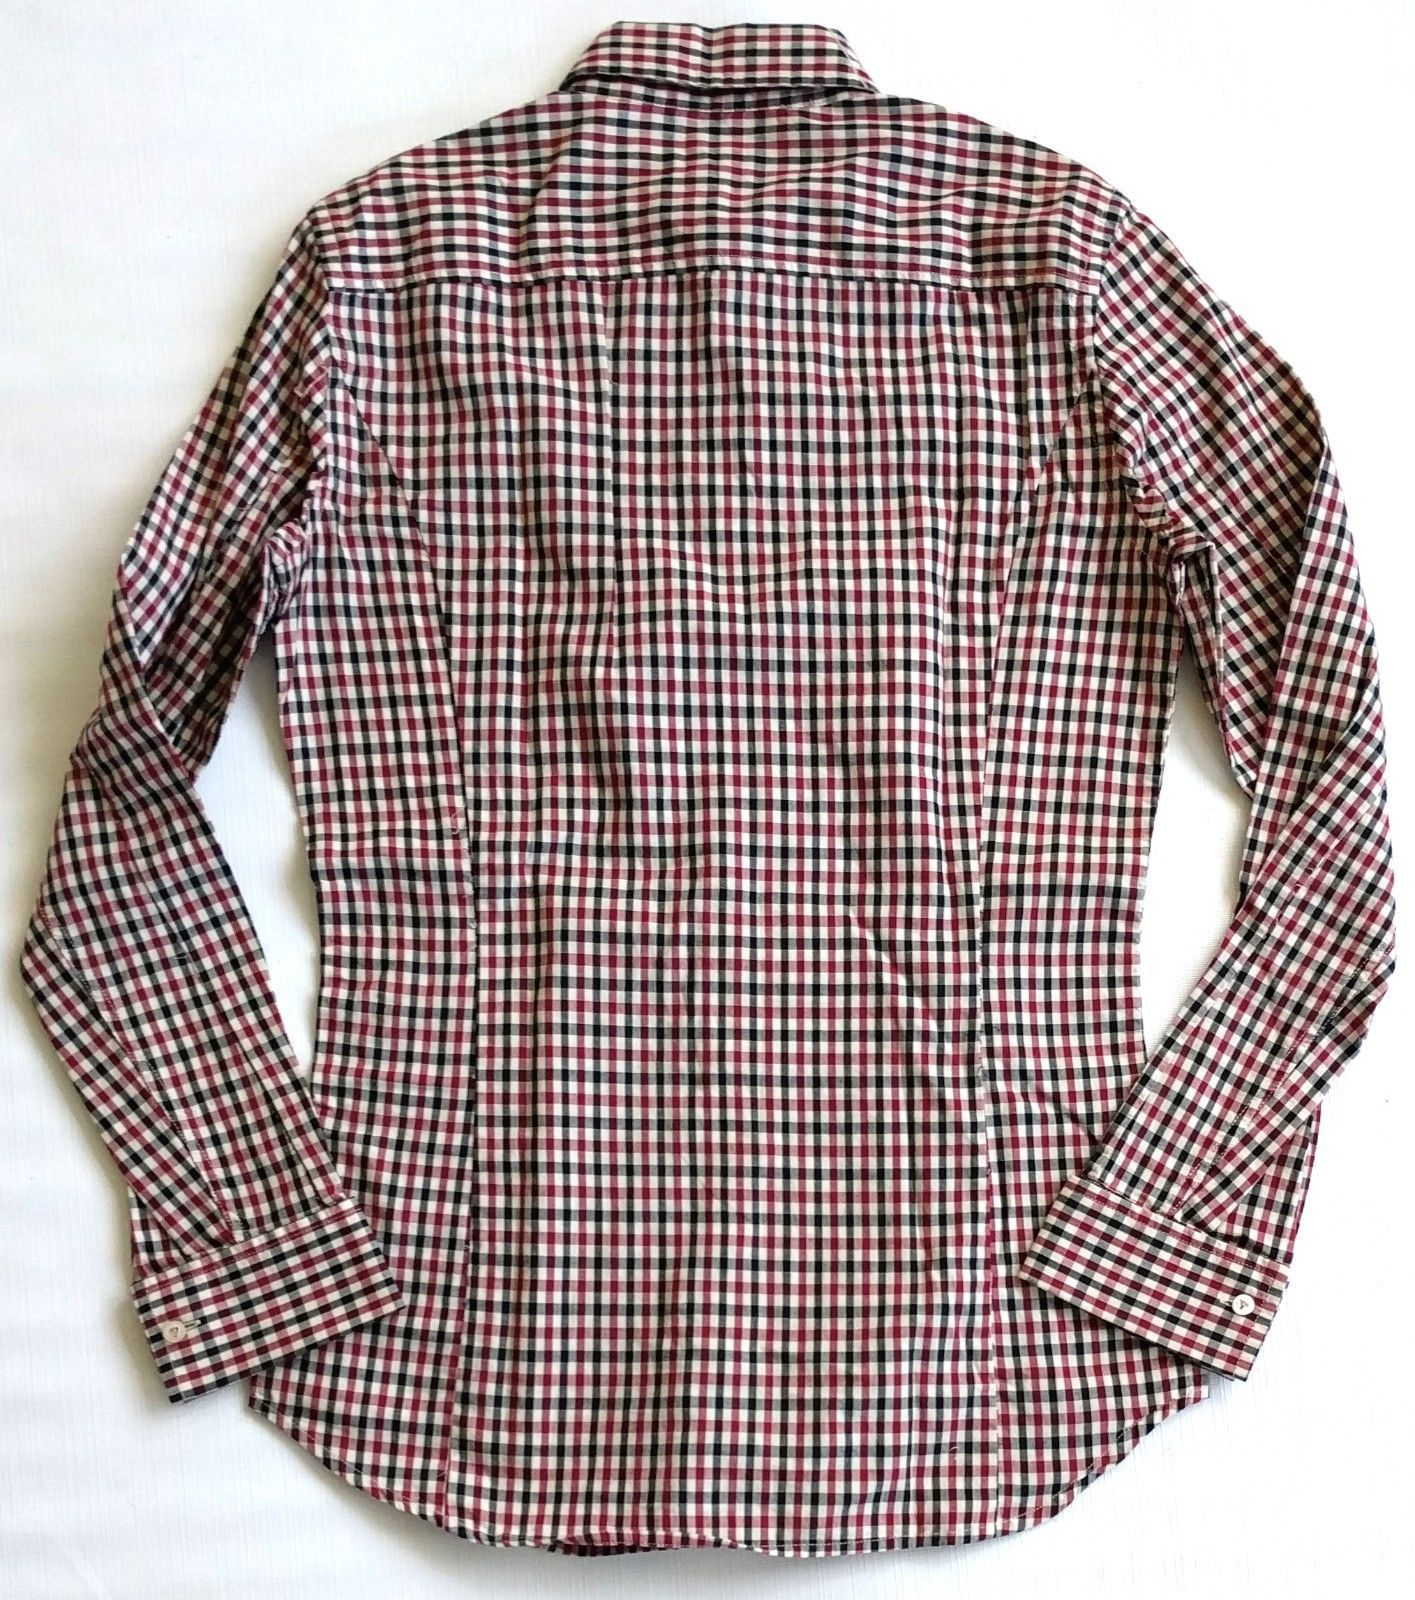 NWOT DIESEL Womens Ruffle Check Fitted Shirt S Cotton Burgundy Black Beige